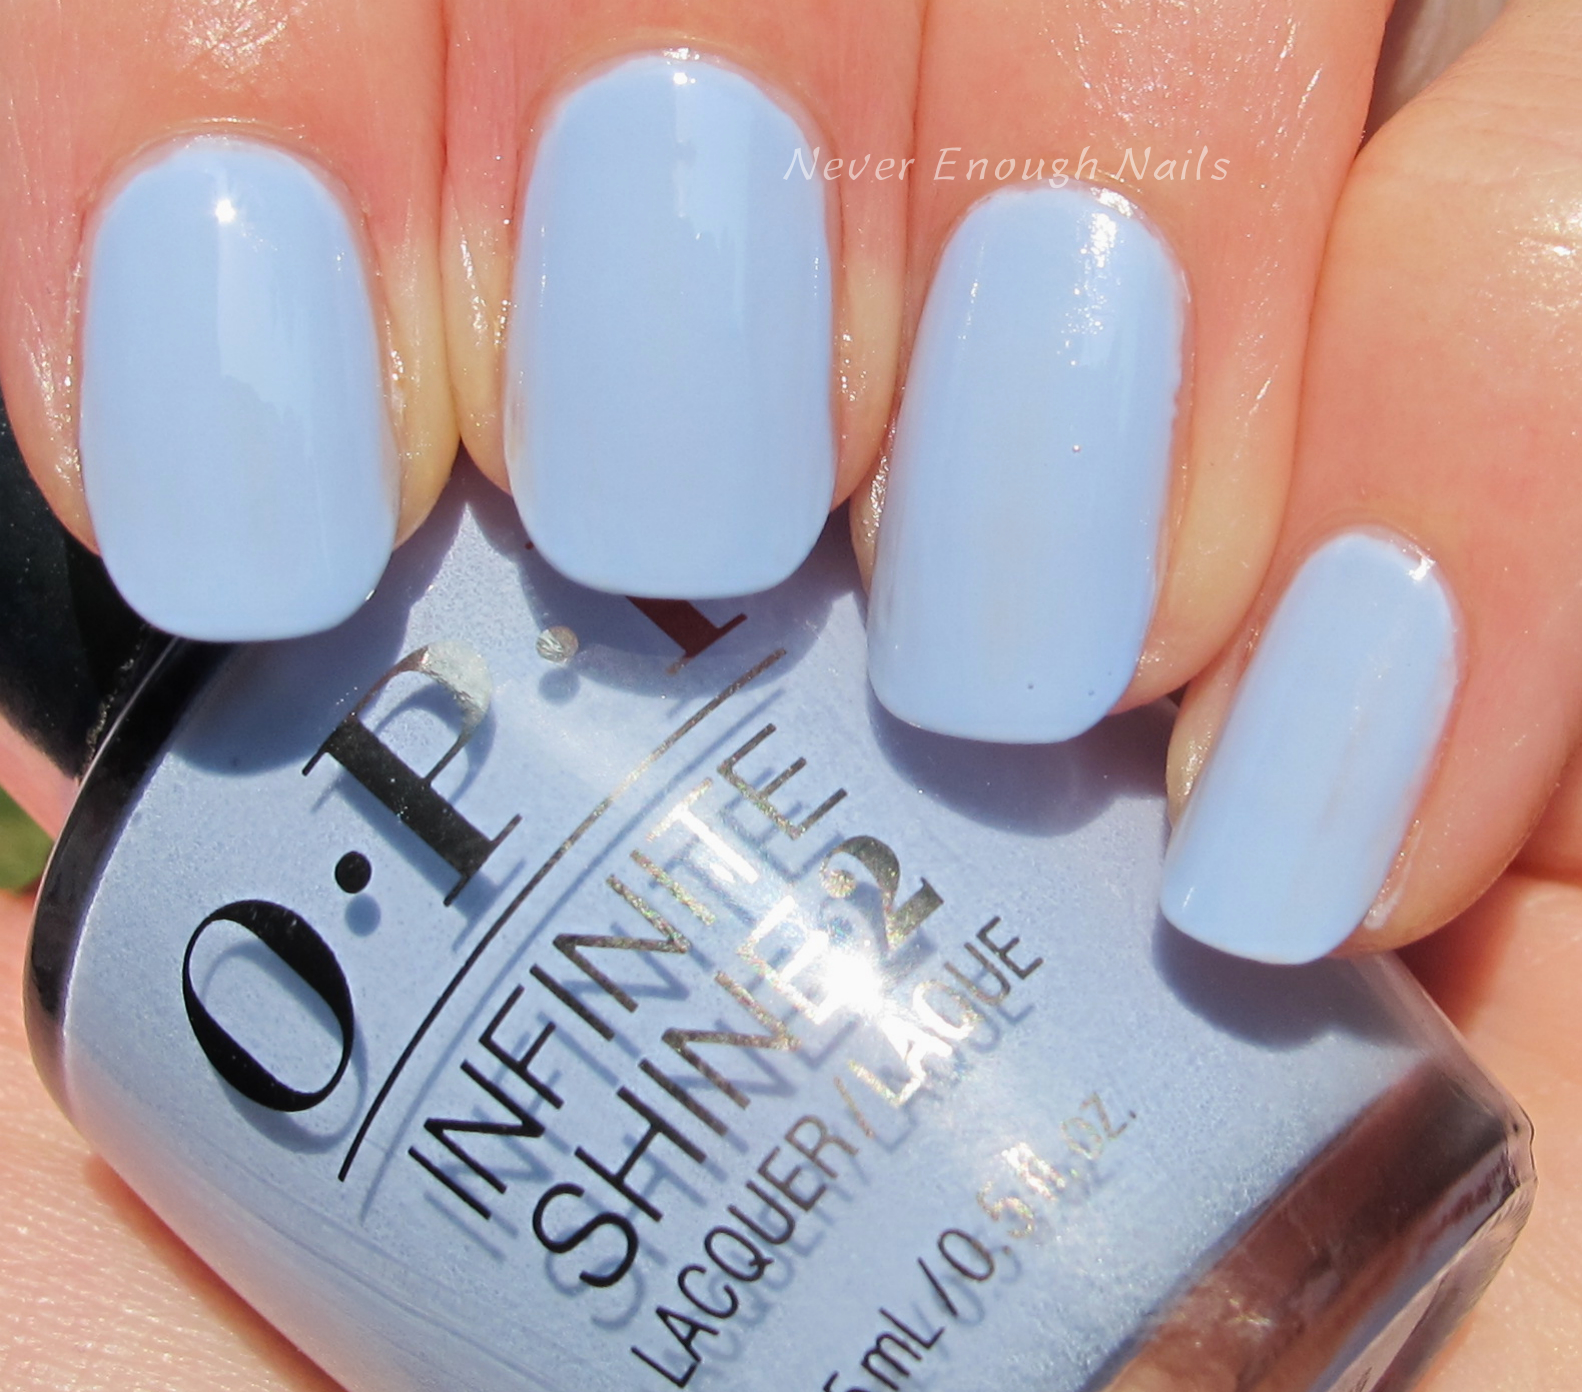 Never Enough Nails Opi Infinite Shine Summer Collection Part 2